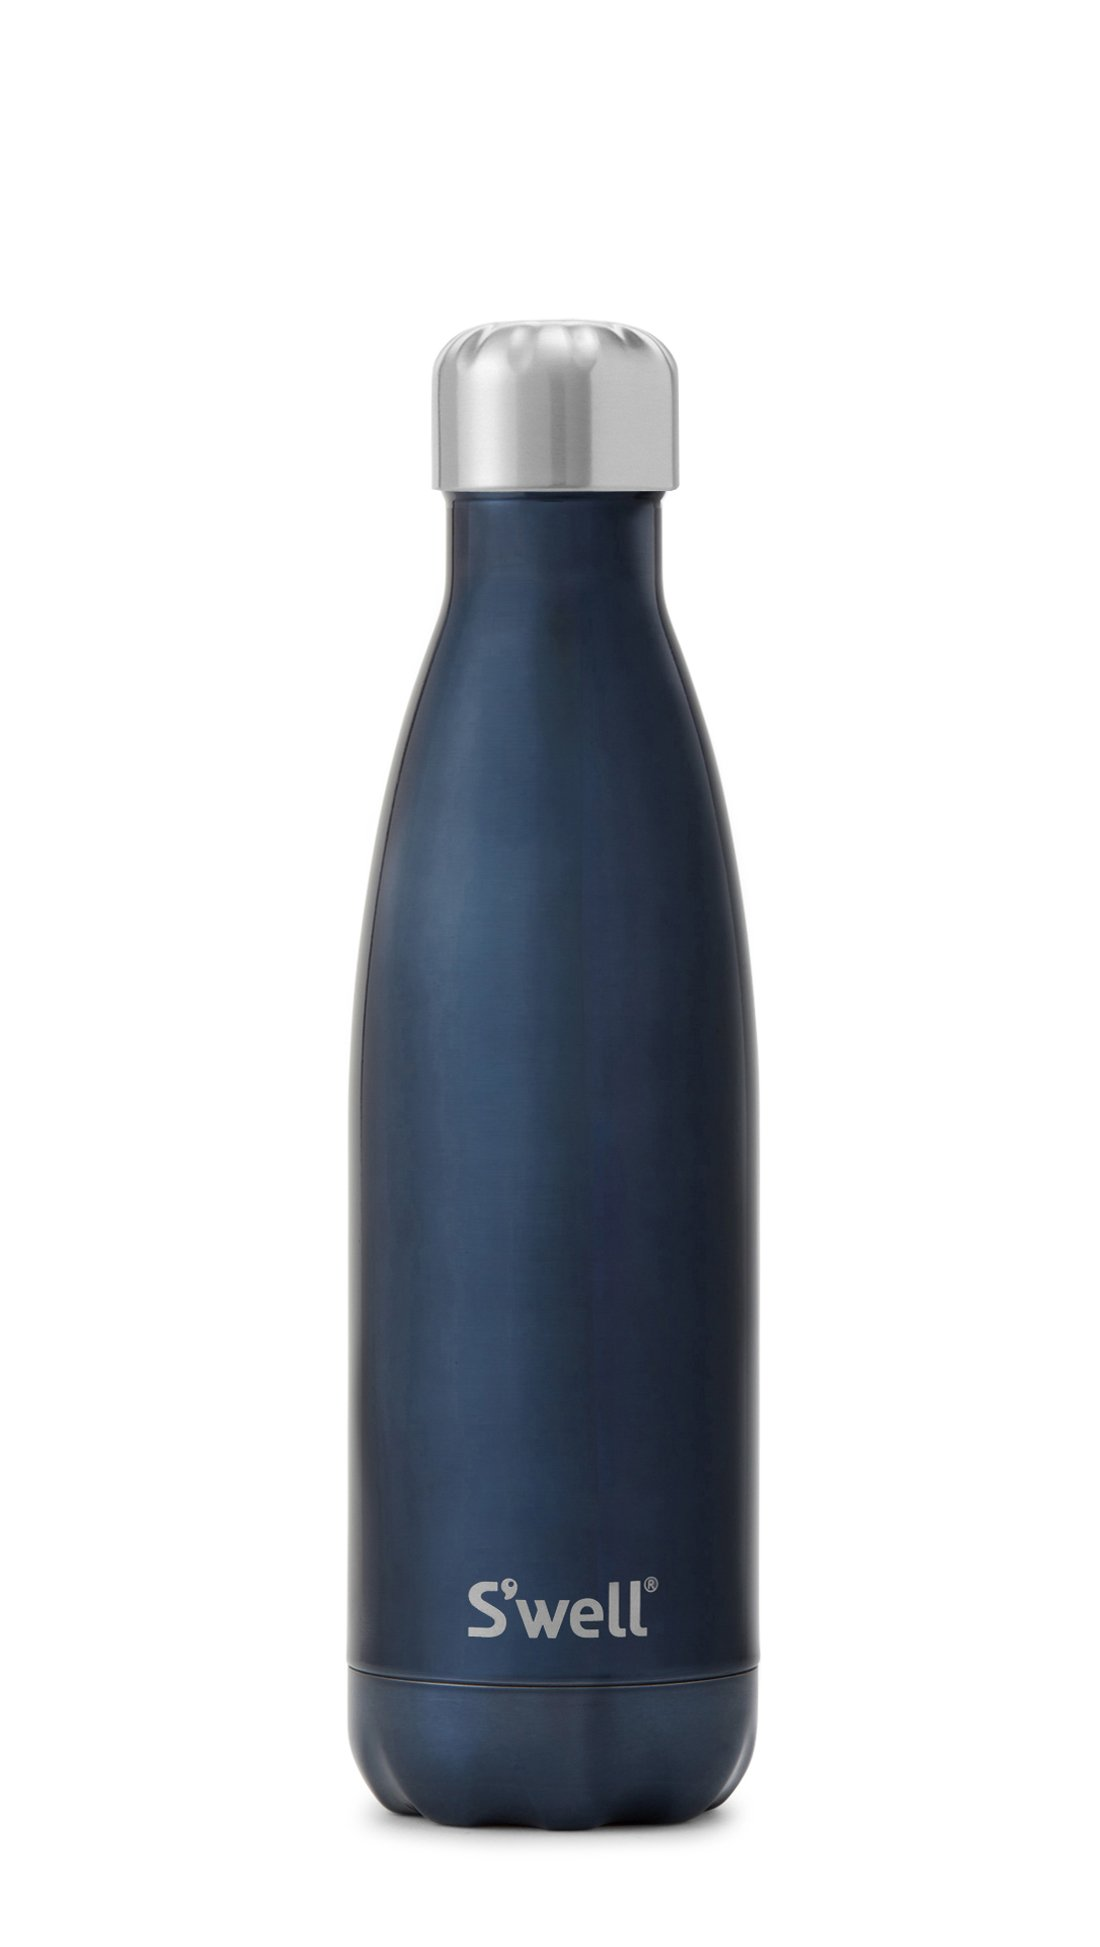 S'well SWB-BLES15 17oz Blue Suede Stainless Water Bottle, 17 oz